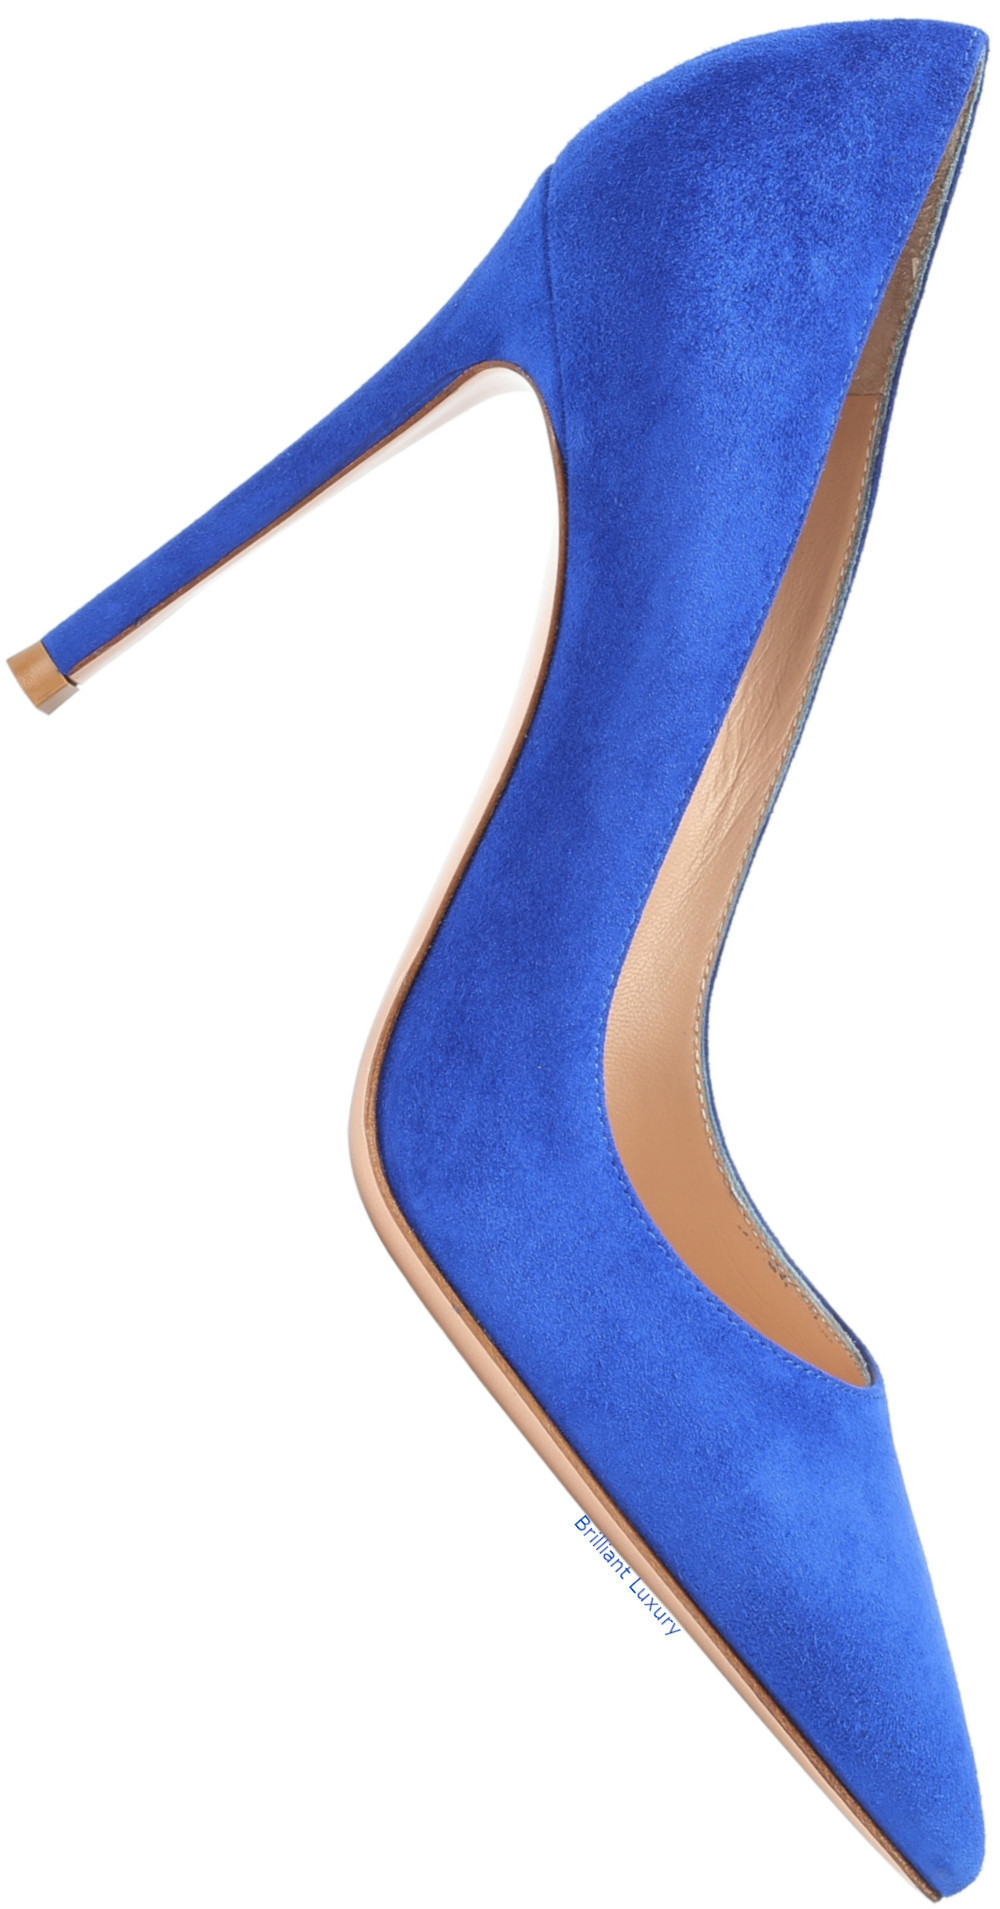 Gianvito Rossi Gianvito blue suede pumps